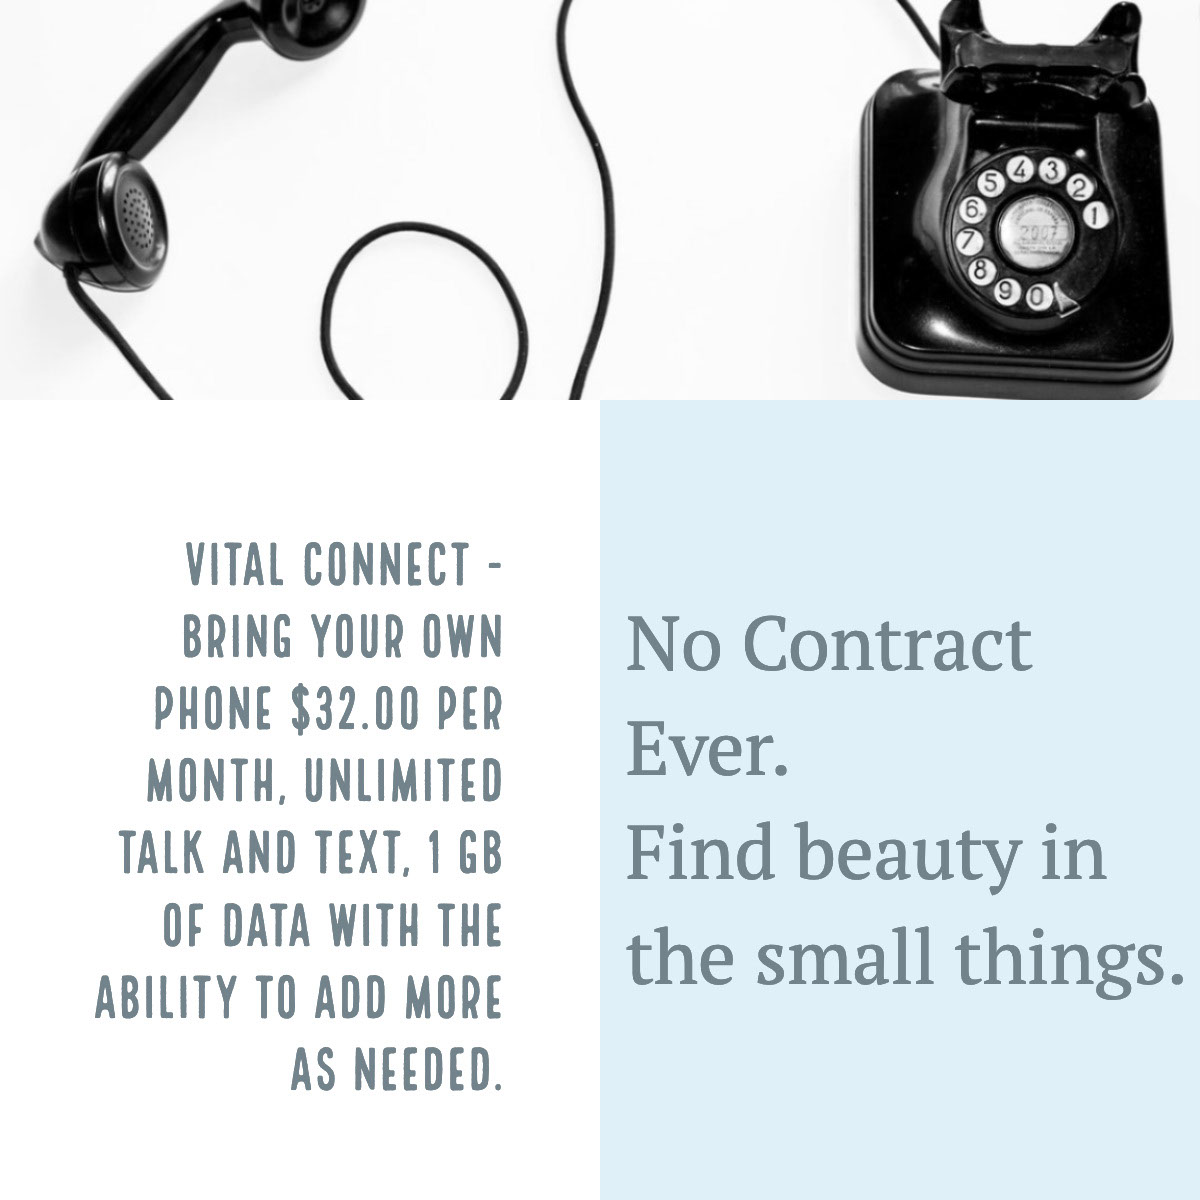 No Contract Ever. <BR>Find beauty in the small things. No Contract Ever. <BR>Find beauty in the small things.<P>Vital Connect - Bring Your Own Phone $32.00 per month, unlimited talk and text, 1 GB of Data with the ability to add more as needed.